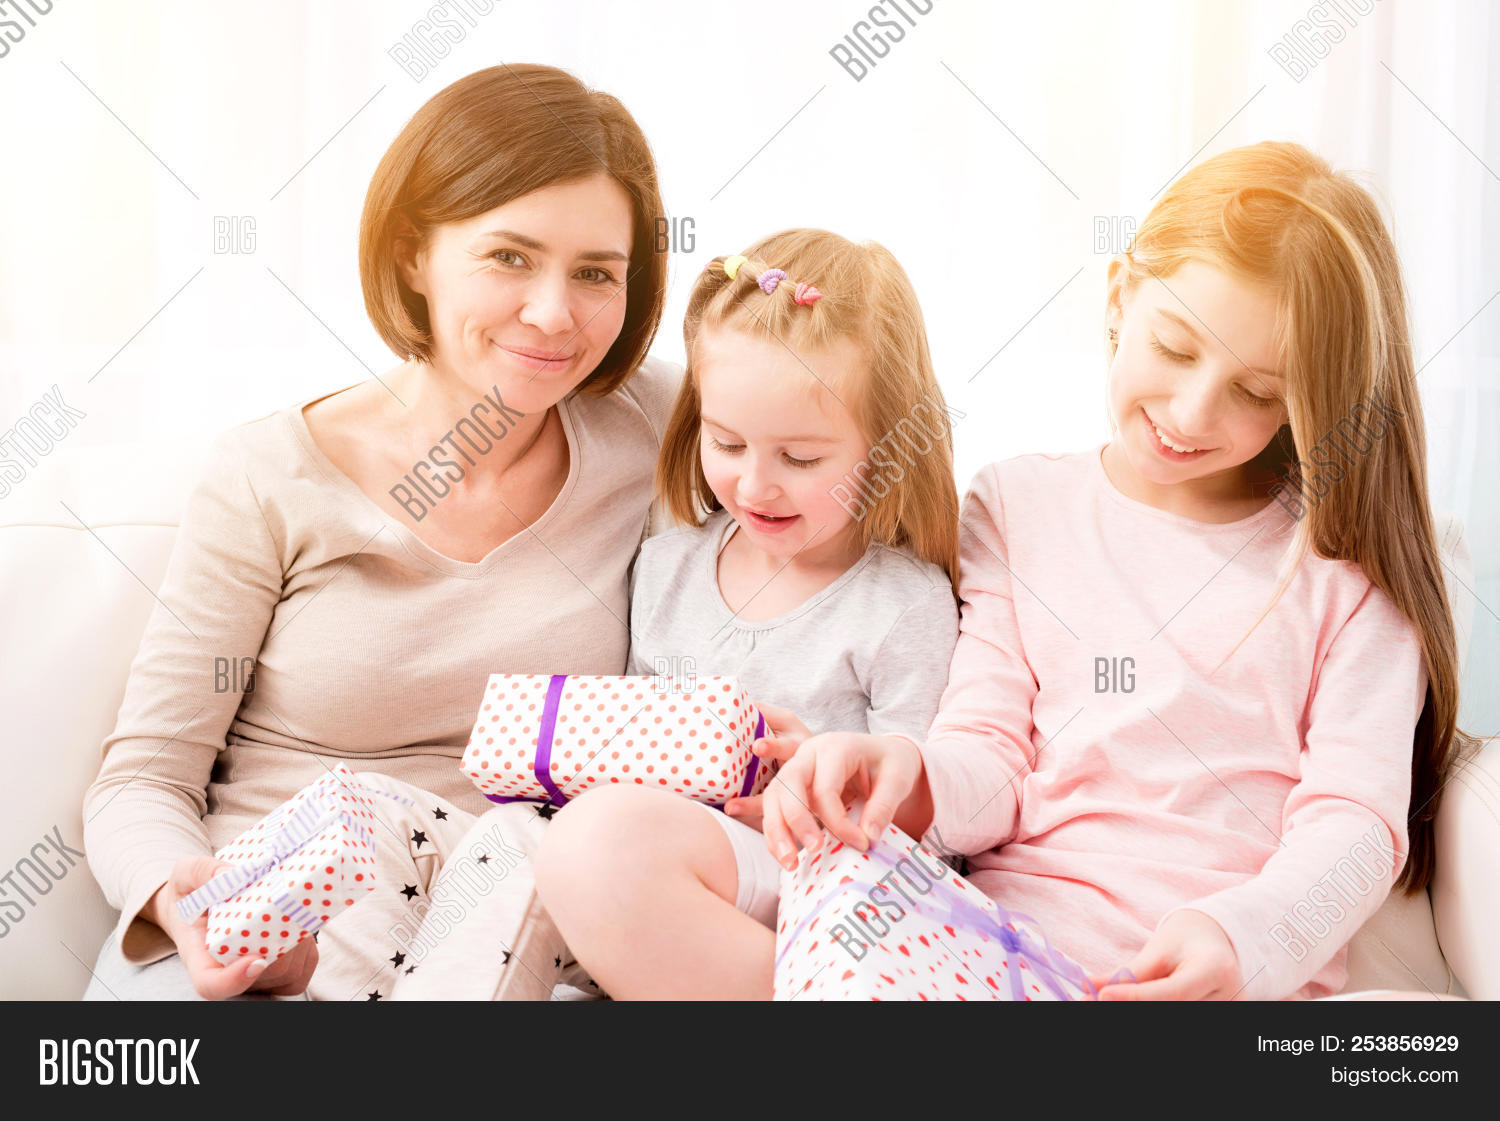 Cheerful Mom And Her Beautiful Daughters Exchanging Gifts Happy Birthday Womans Day